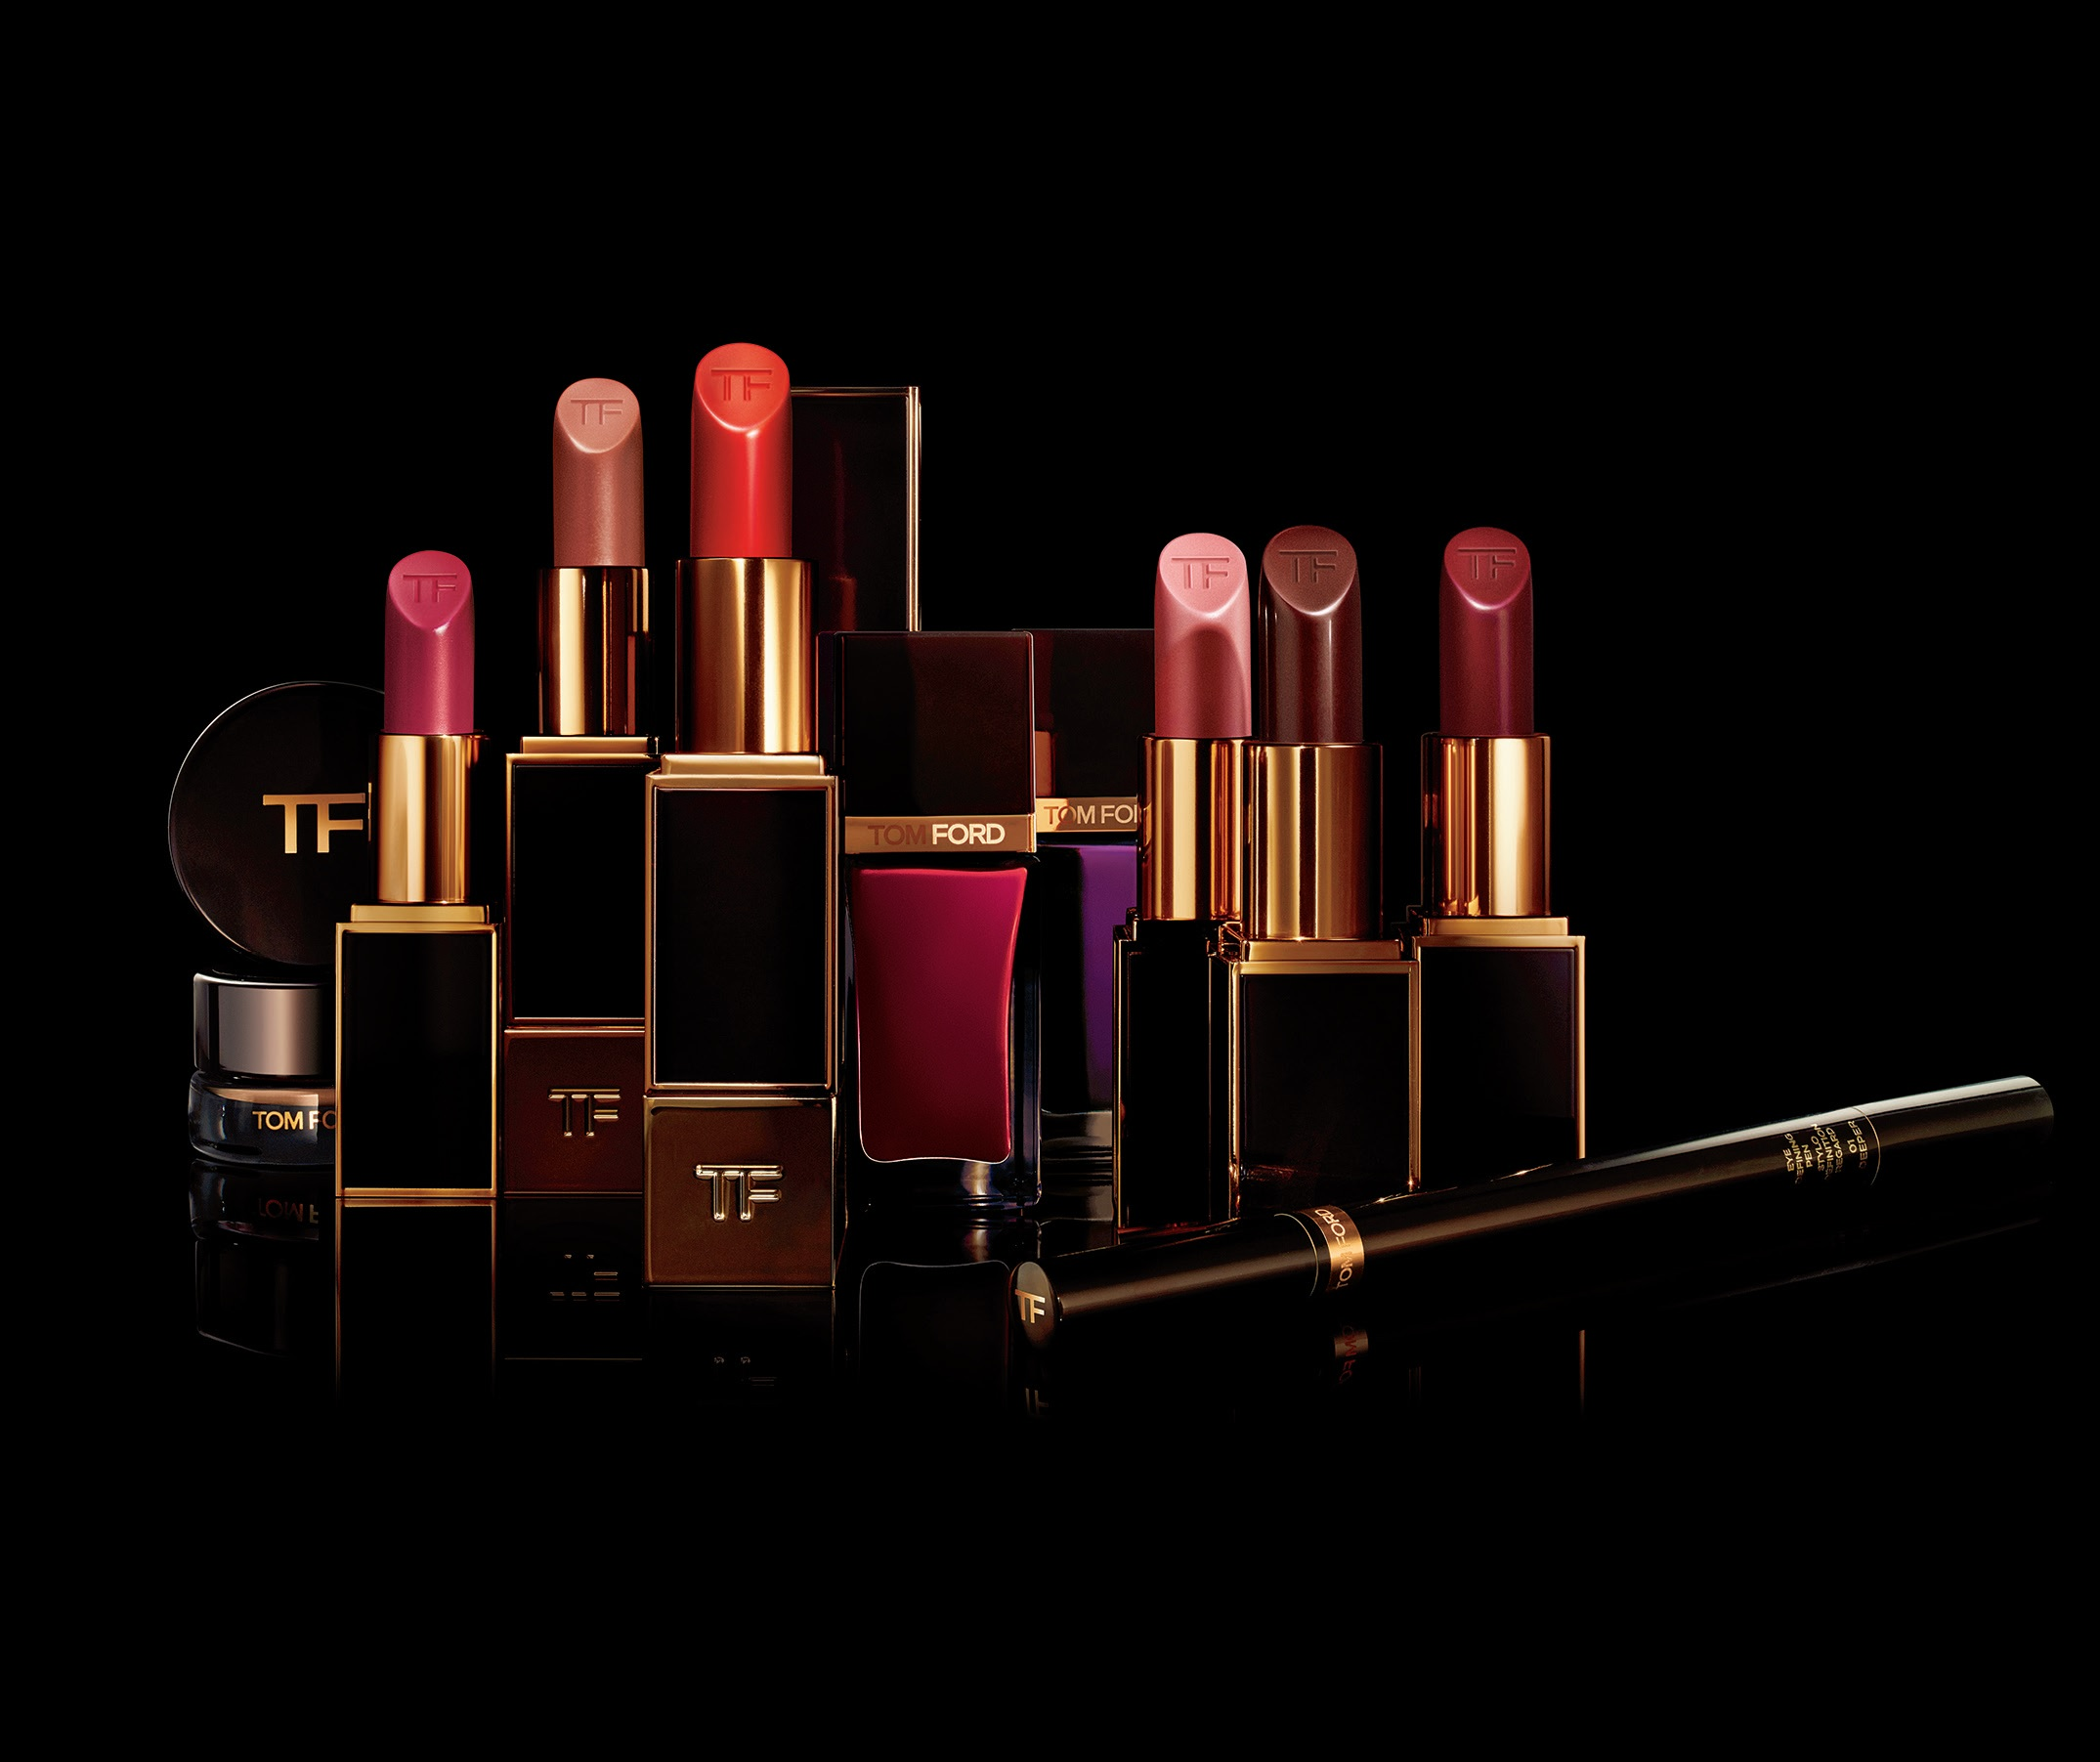 BUY IT NOW: TOM FORD MATTE LIP COLOR COLLECTION featured image